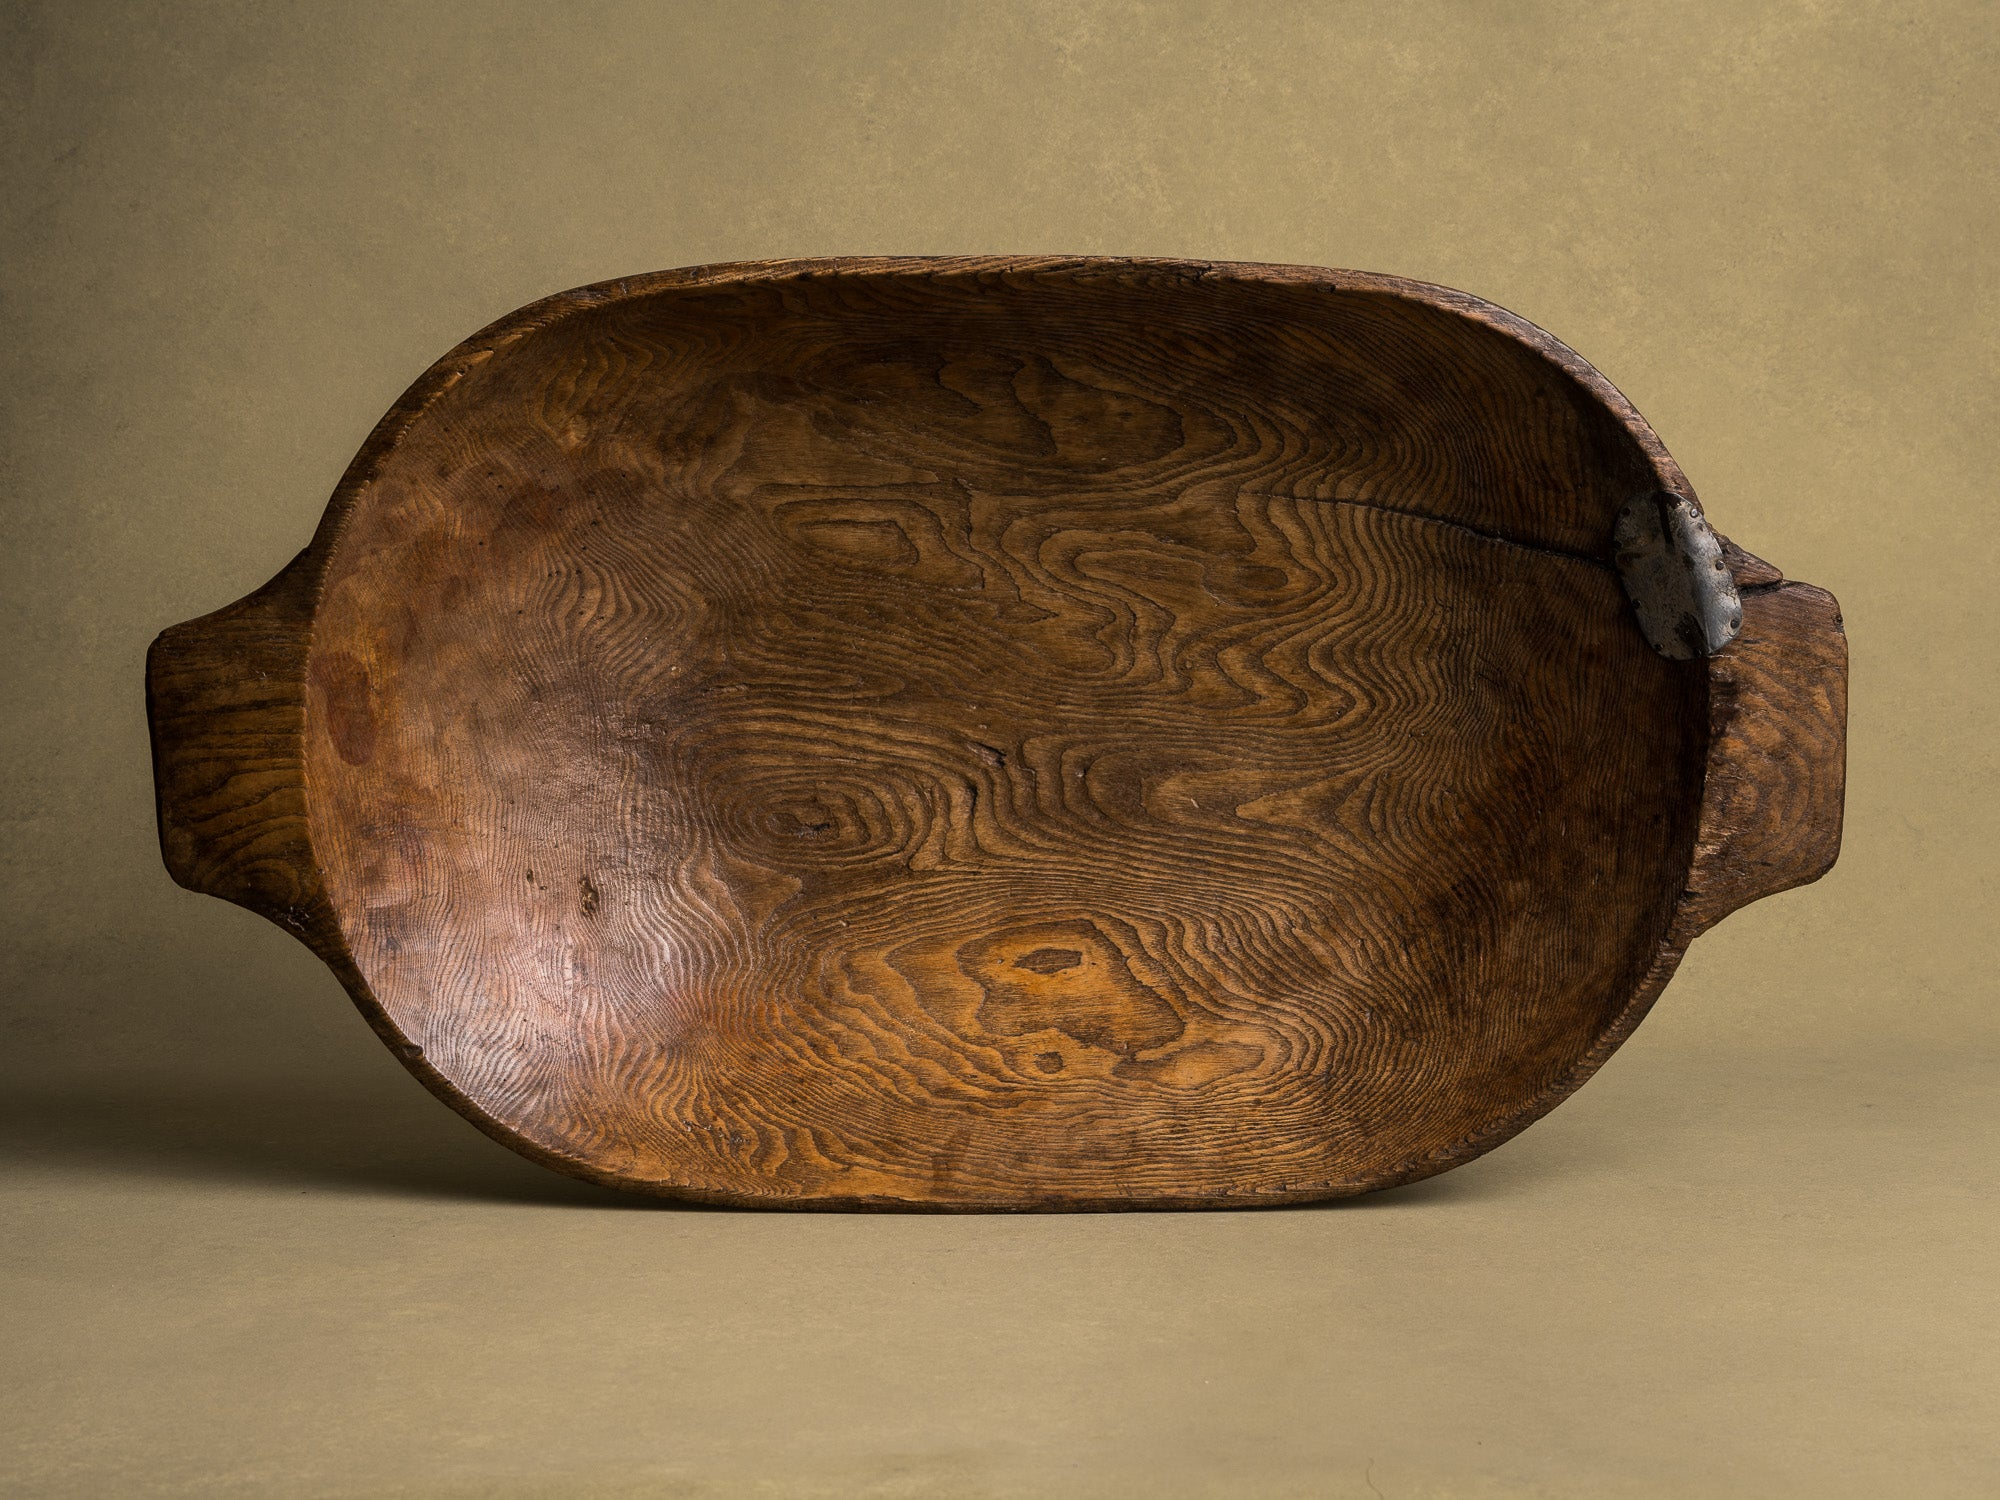 Ancienne coupe à faire le pain / pétrin, art paysan, Angleterre (XIXe siècle)..Old wood carved bread & dought bowl, Peasant art, England (19th century)